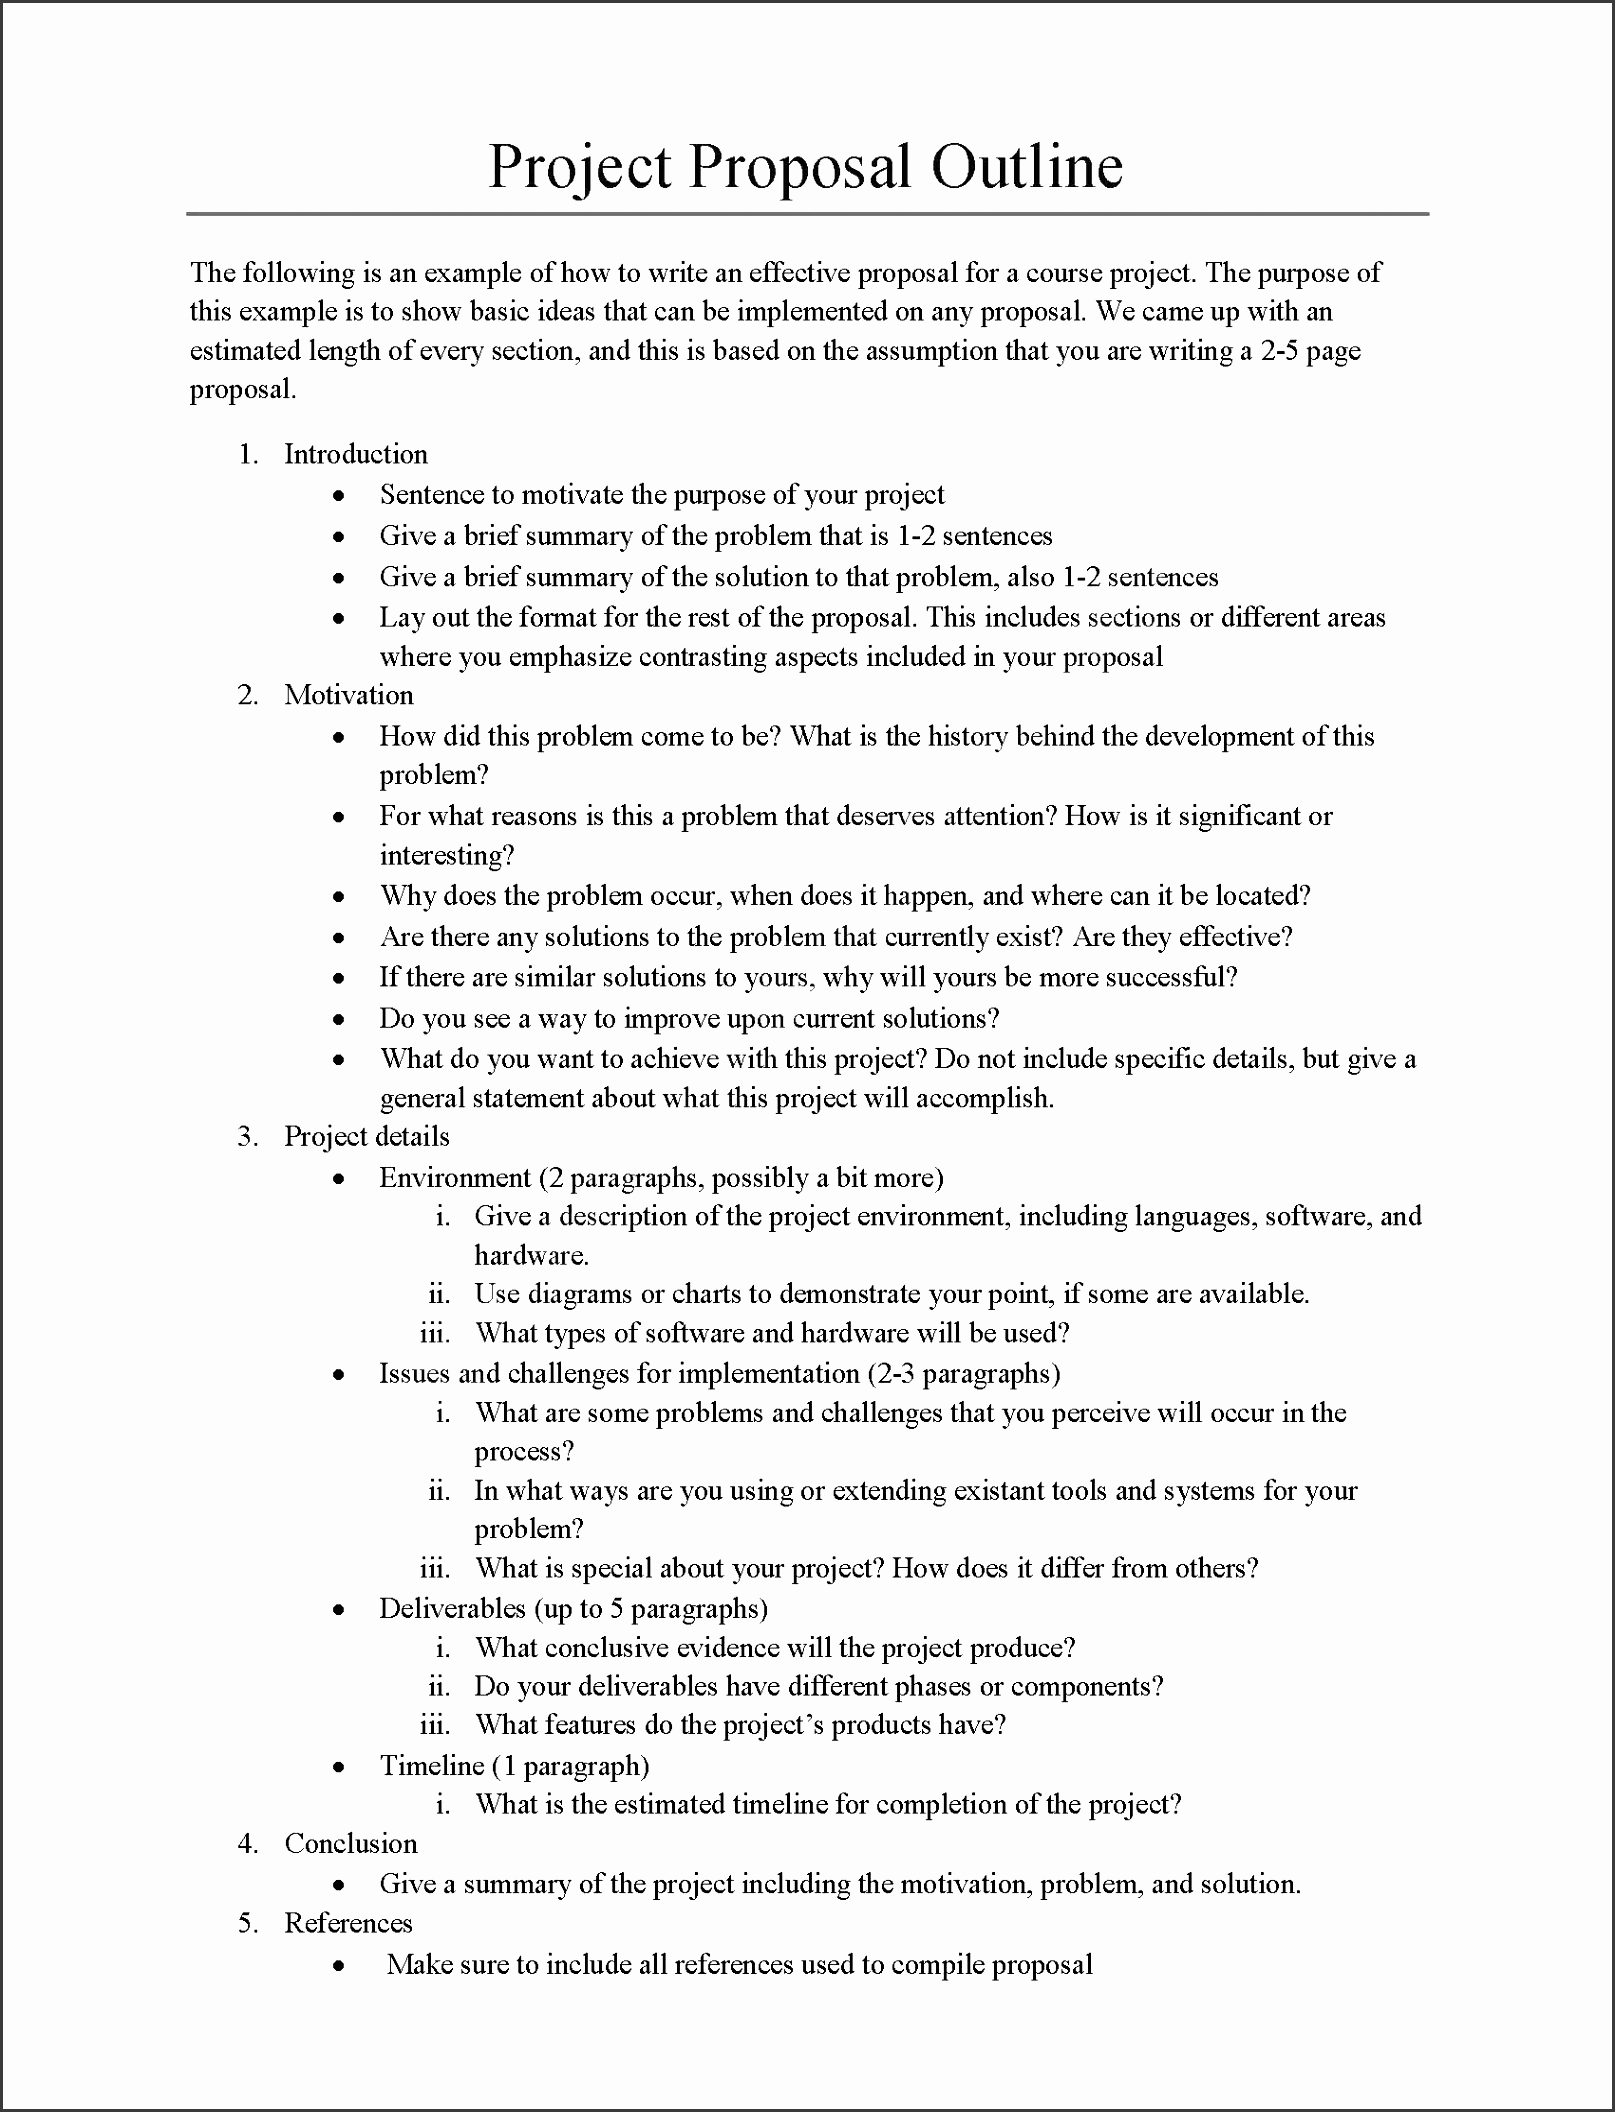 project proposal outline sample